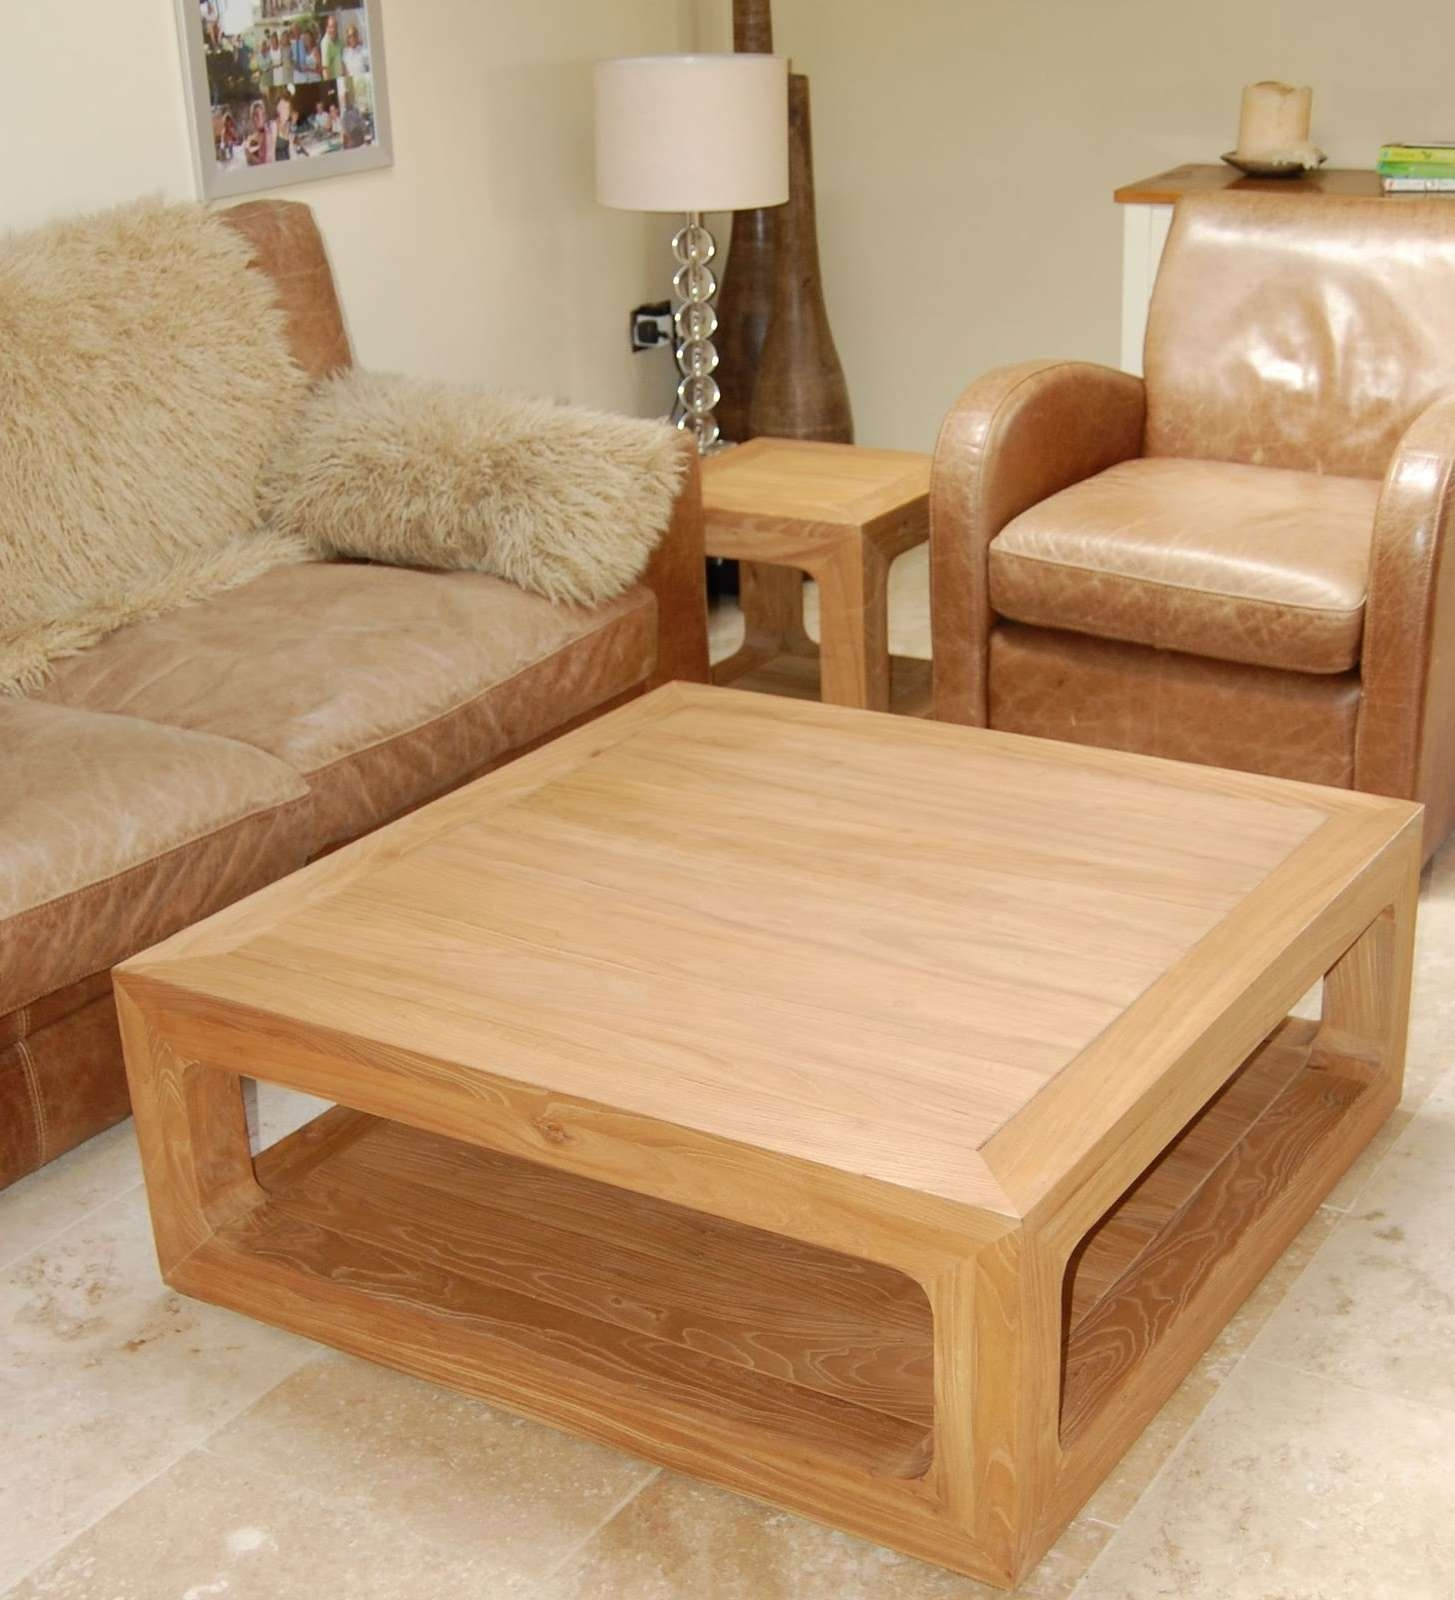 2018 Coffee Table Rounded Corners Throughout Square Coffee Table Rounded Corners • Table Ideas (View 3 of 20)